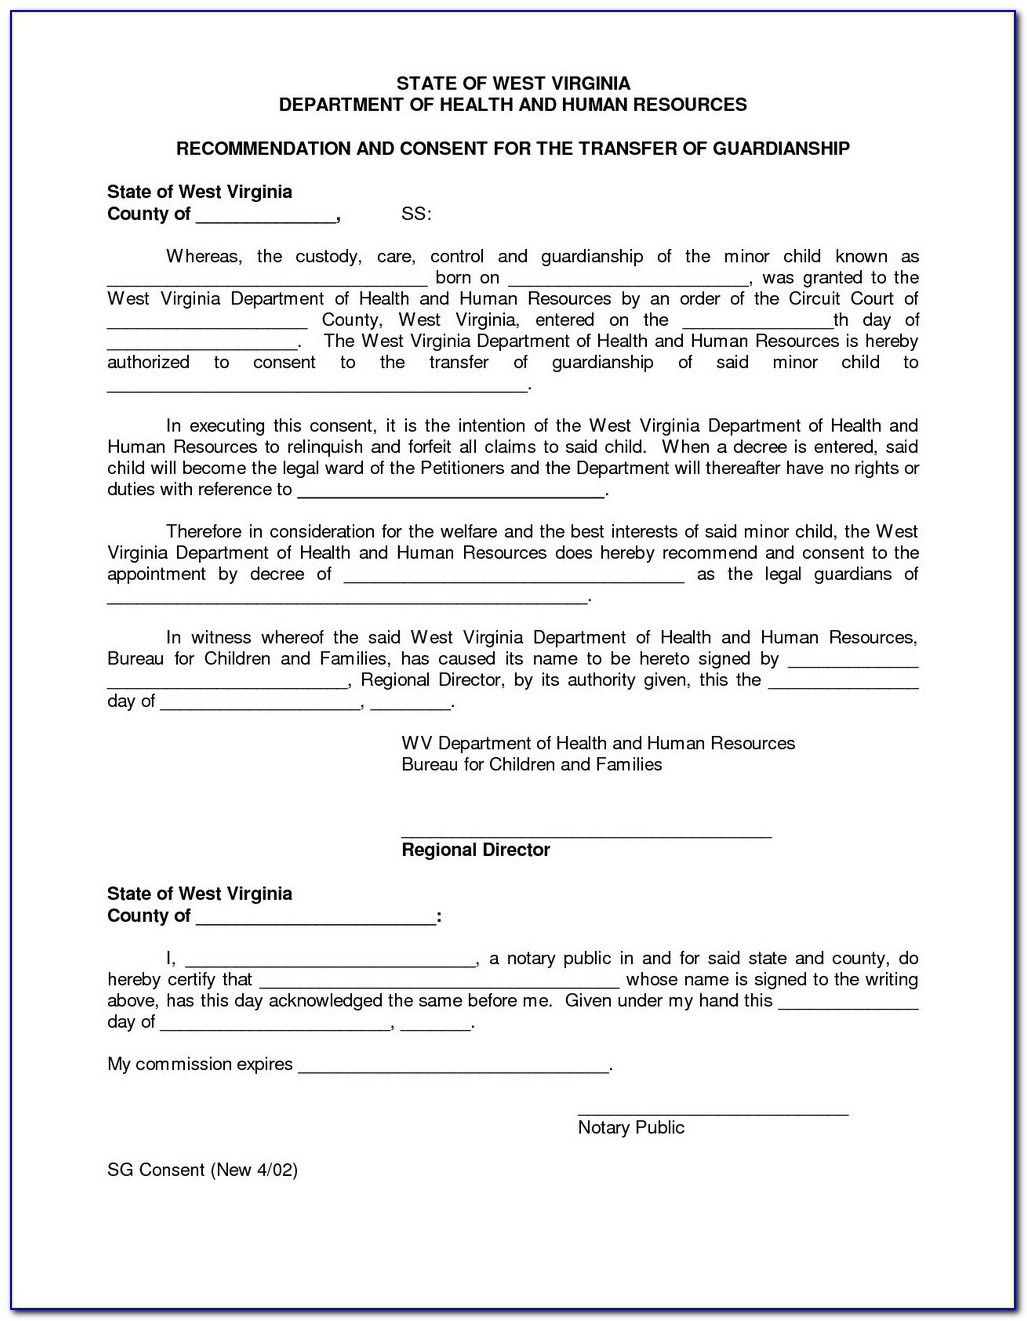 Guardianship Forms Texas - Form : Resume Examples #xo2Nb3X2V1 - Free Printable Guardianship Forms Texas